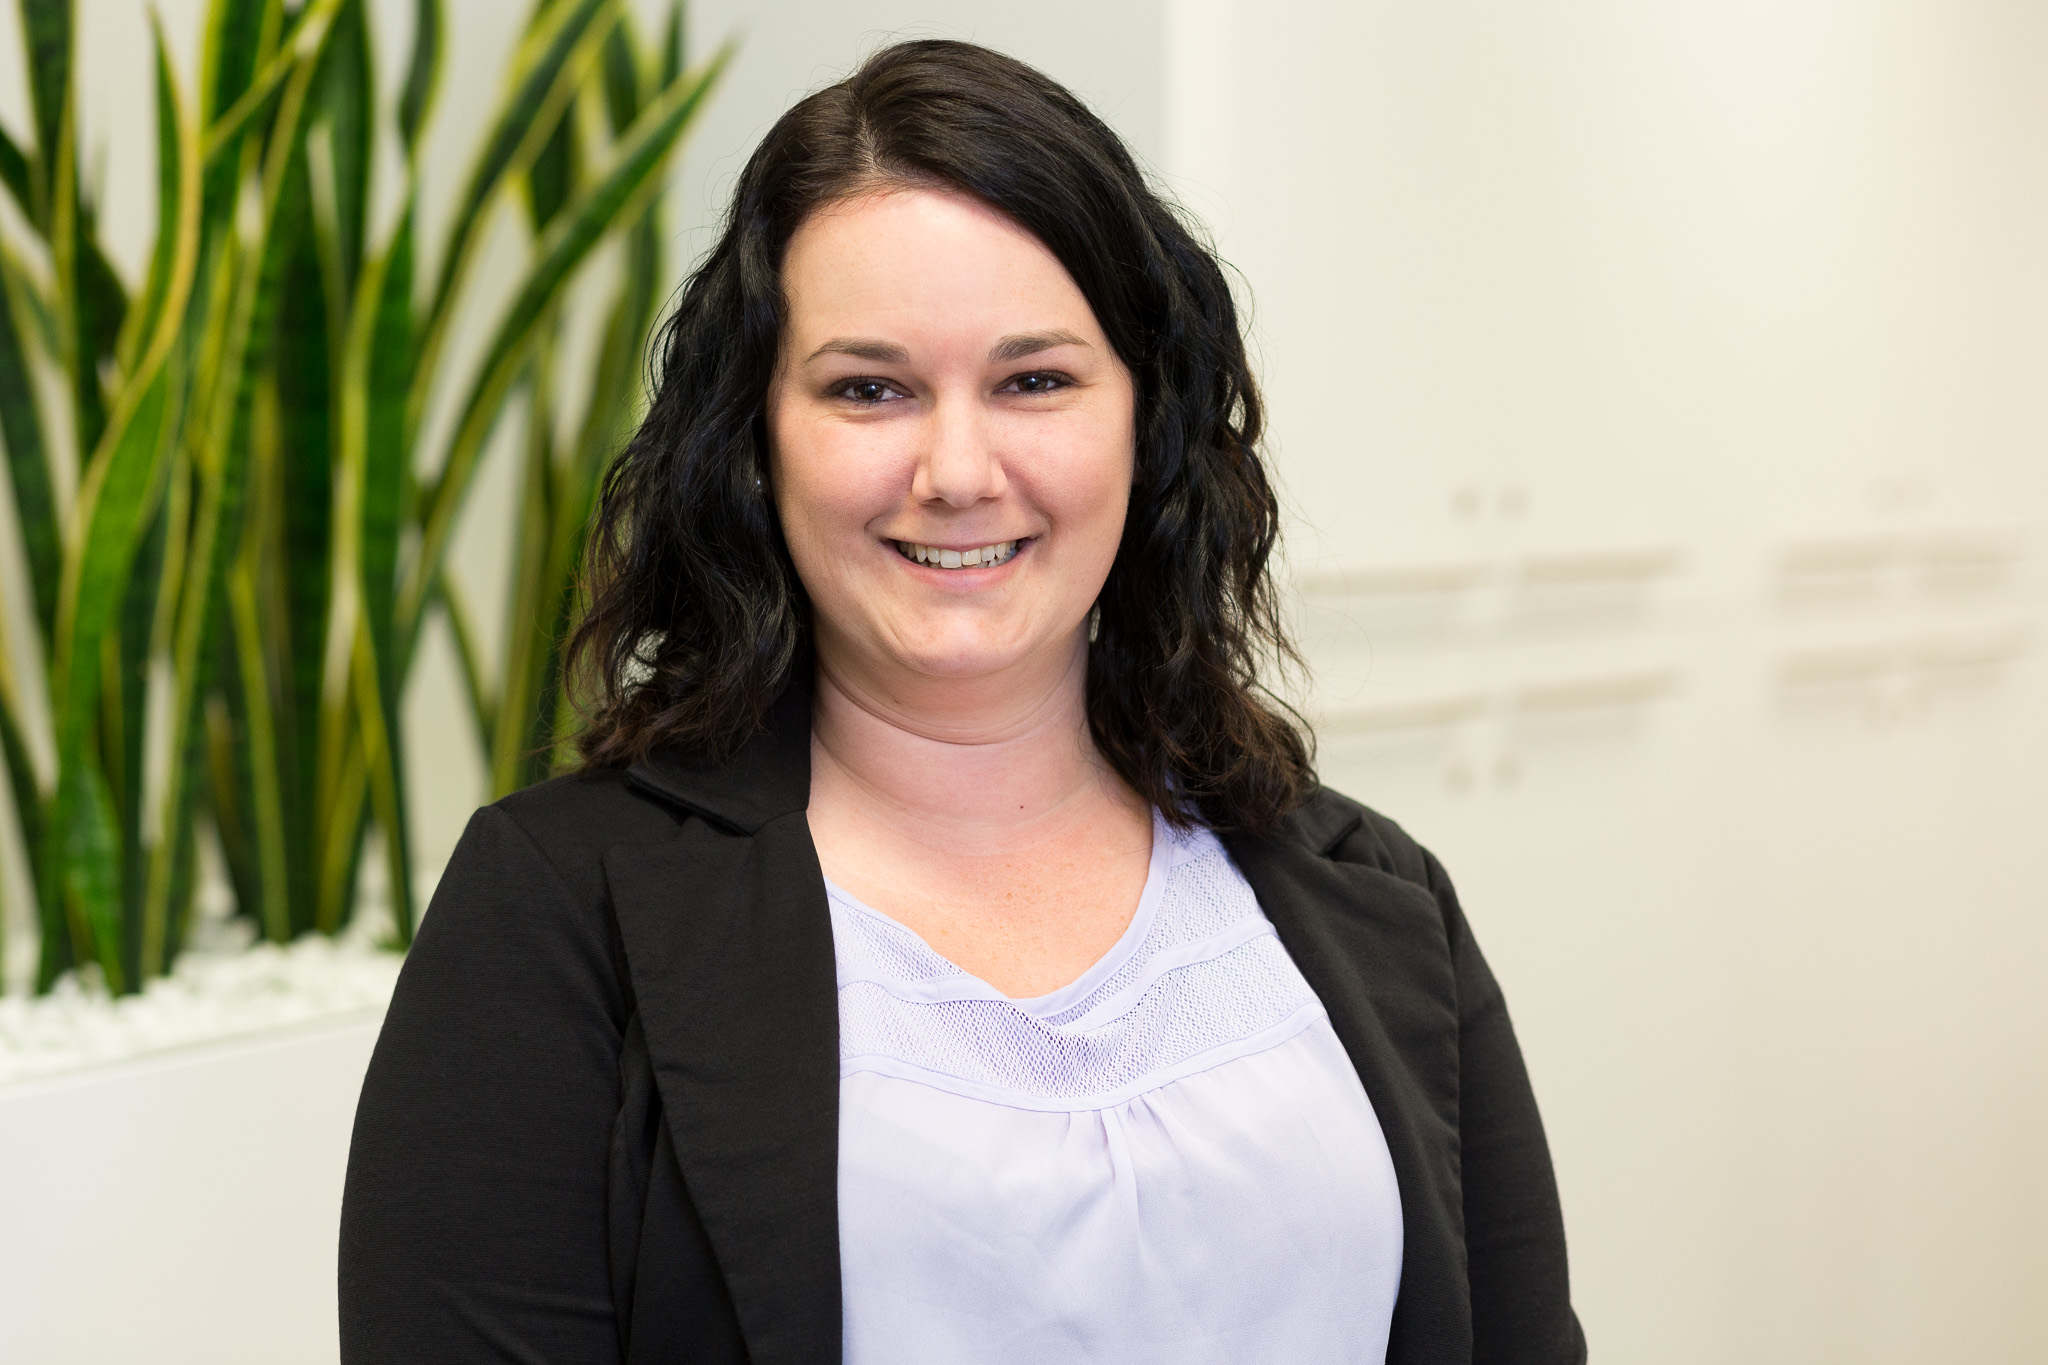 KARINA SCOTT Accounts and Administration Officer   Karina joined Letcher Moroney in 2016 as an Accounts and Administration Officer with over 10 years experience in accounting administration. She is currently completing her Diploma in Business and Management and grew up in a small farming town in the South East of South Australia.